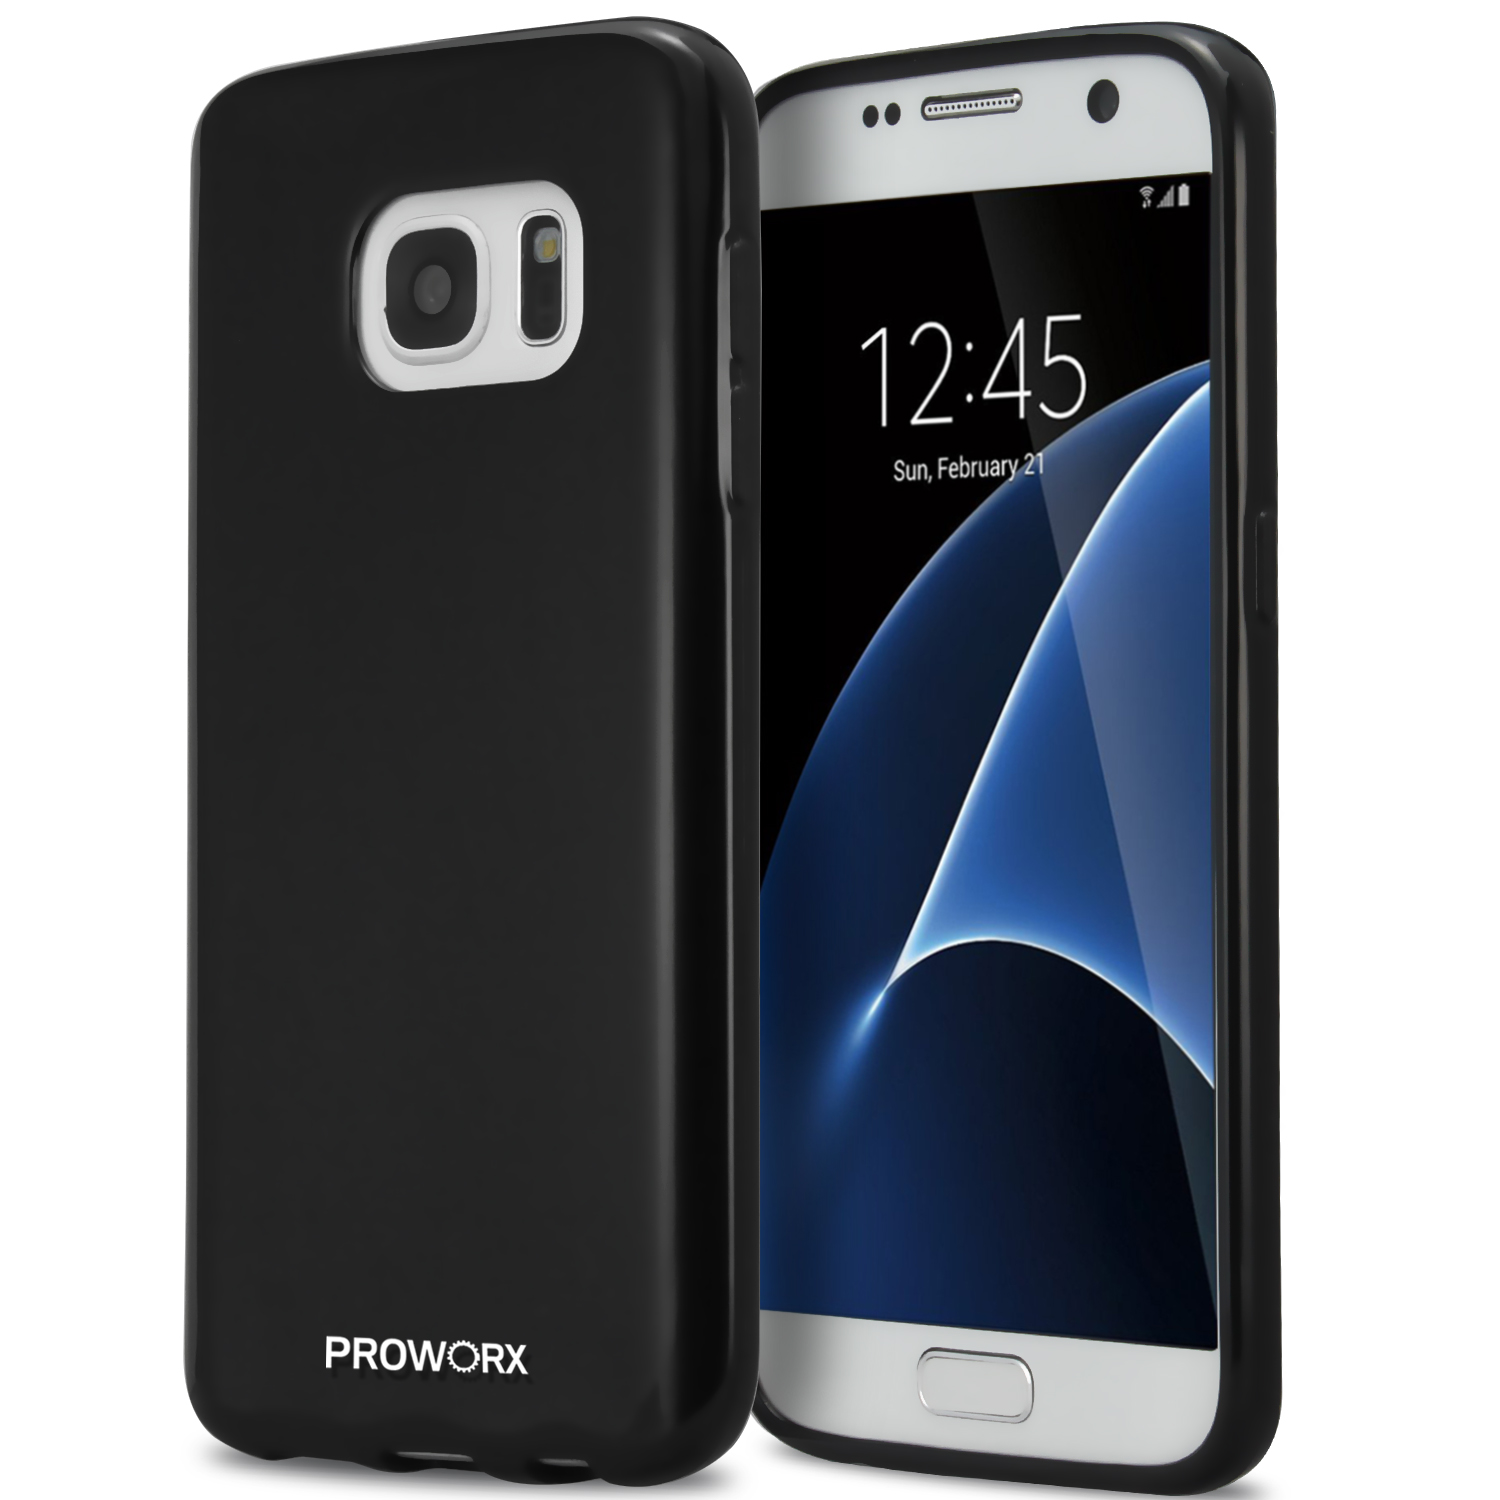 Samsung Galaxy S7 Black ProWorx Ultra Slim Thin Scratch Resistant TPU Silicone Case Cover